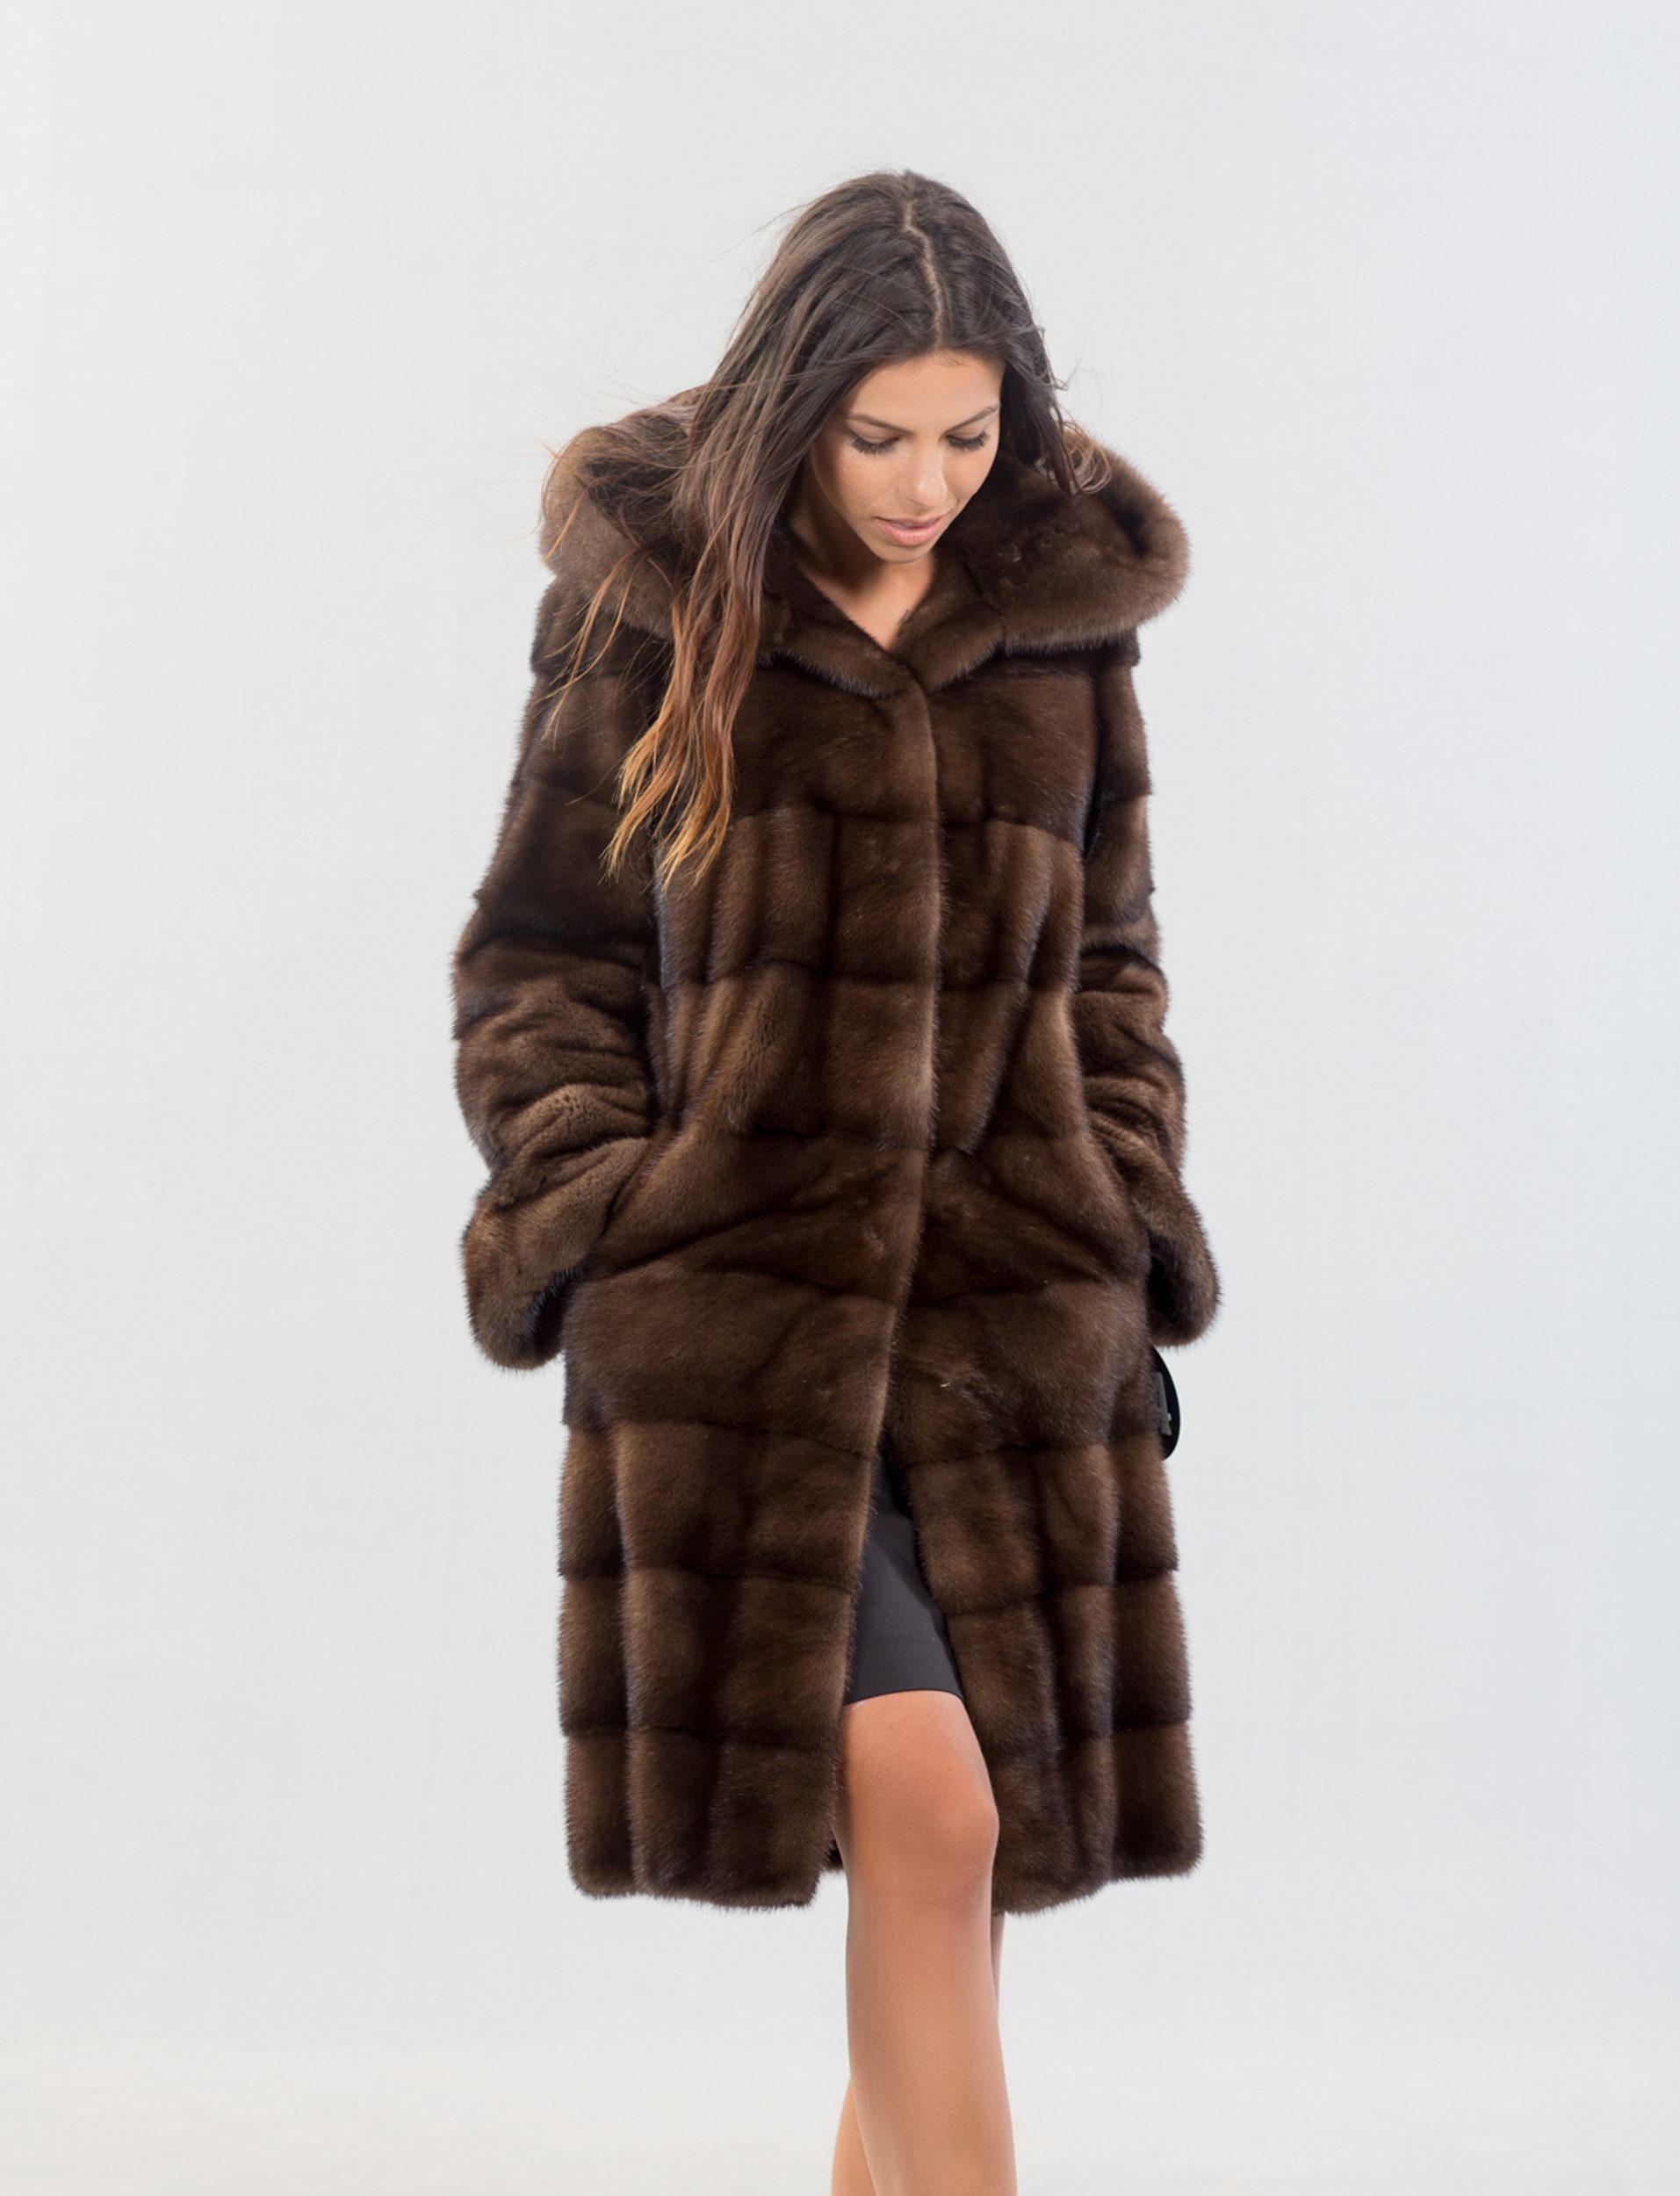 Brown Mnk Fur Coat - Haute Acorn Real Fur Clothing